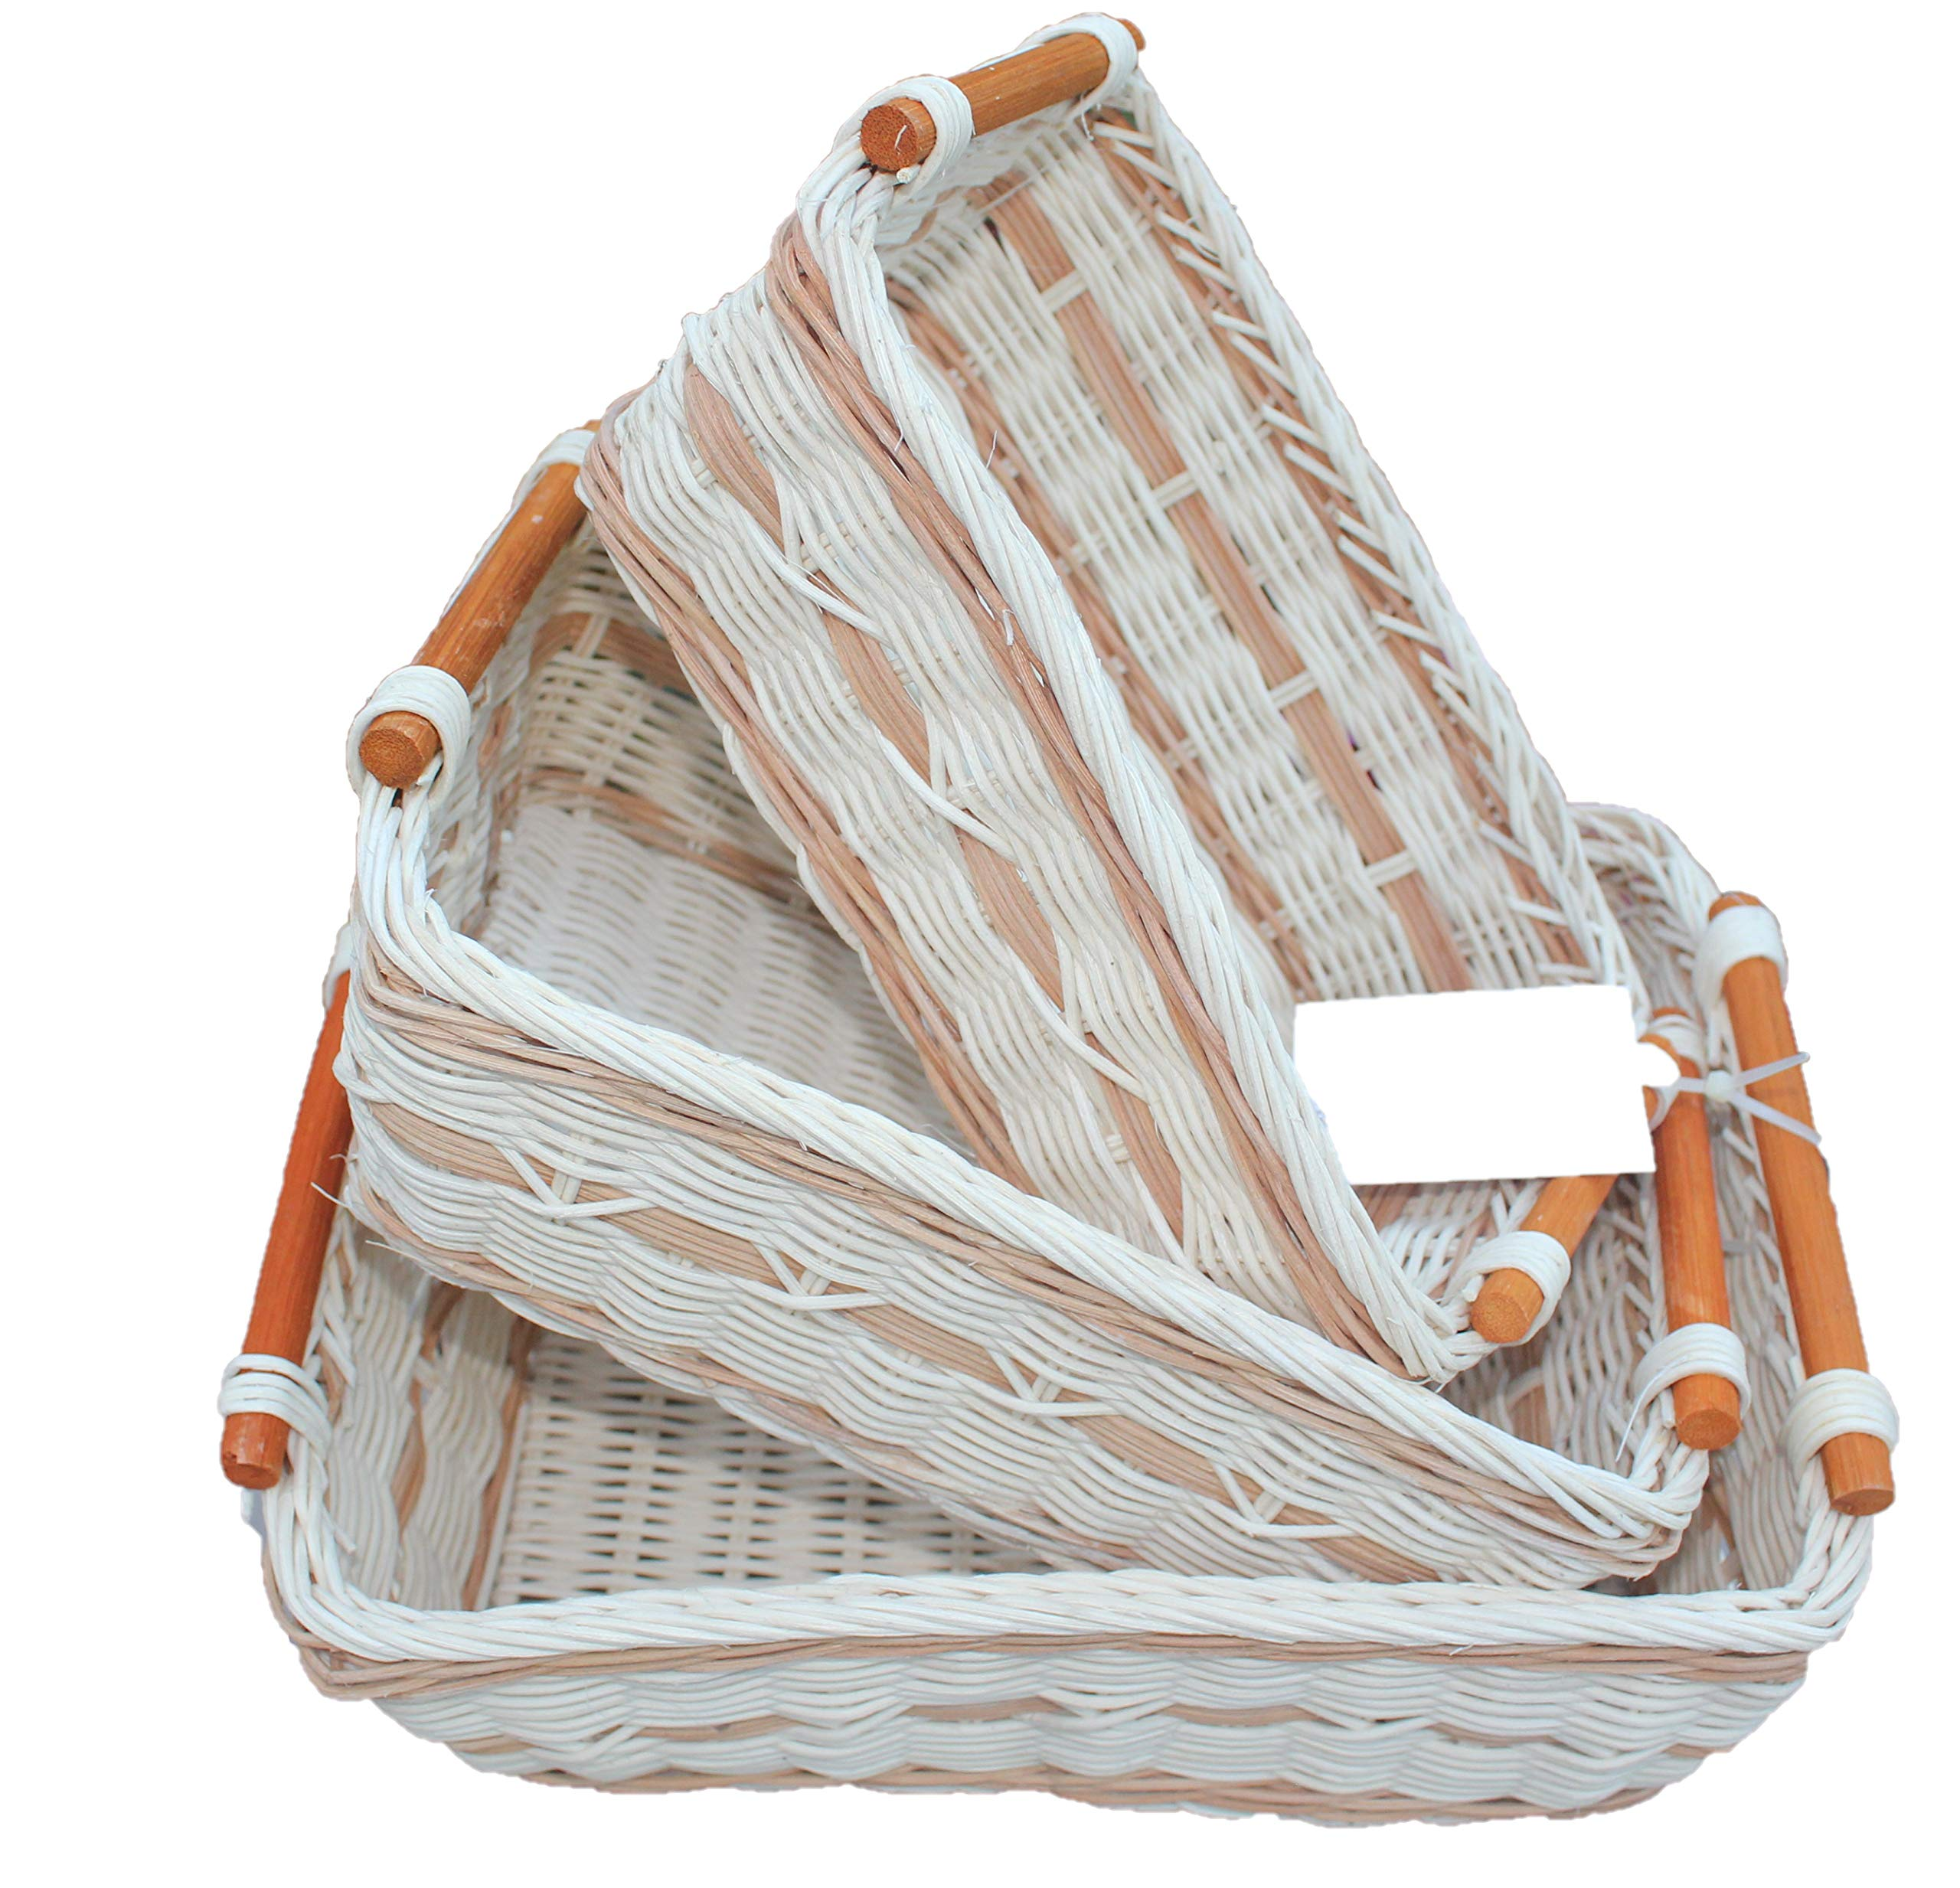 ShopOnNet RT430712-3 Handwoven Retangular Wicker Storage Basket with Handle in Cream and Brown (Set of 3) - Sold as a set of three. Handwoven eco-friendly wicker basket with durable rattan wicker material and each comes with a curve pole handle on each end of the basket. These wicker baskets are also stackable, making storage easy and convenient. Make organizing any room in your home easy with this basket. These Wicker baskets are handcrafted therefore they may vary slightly in sizes. Dimension: * Large size: L11.8 inches x W9.1 x H4.0 inches; - living-room-decor, living-room, baskets-storage - 81lzgdeostL -